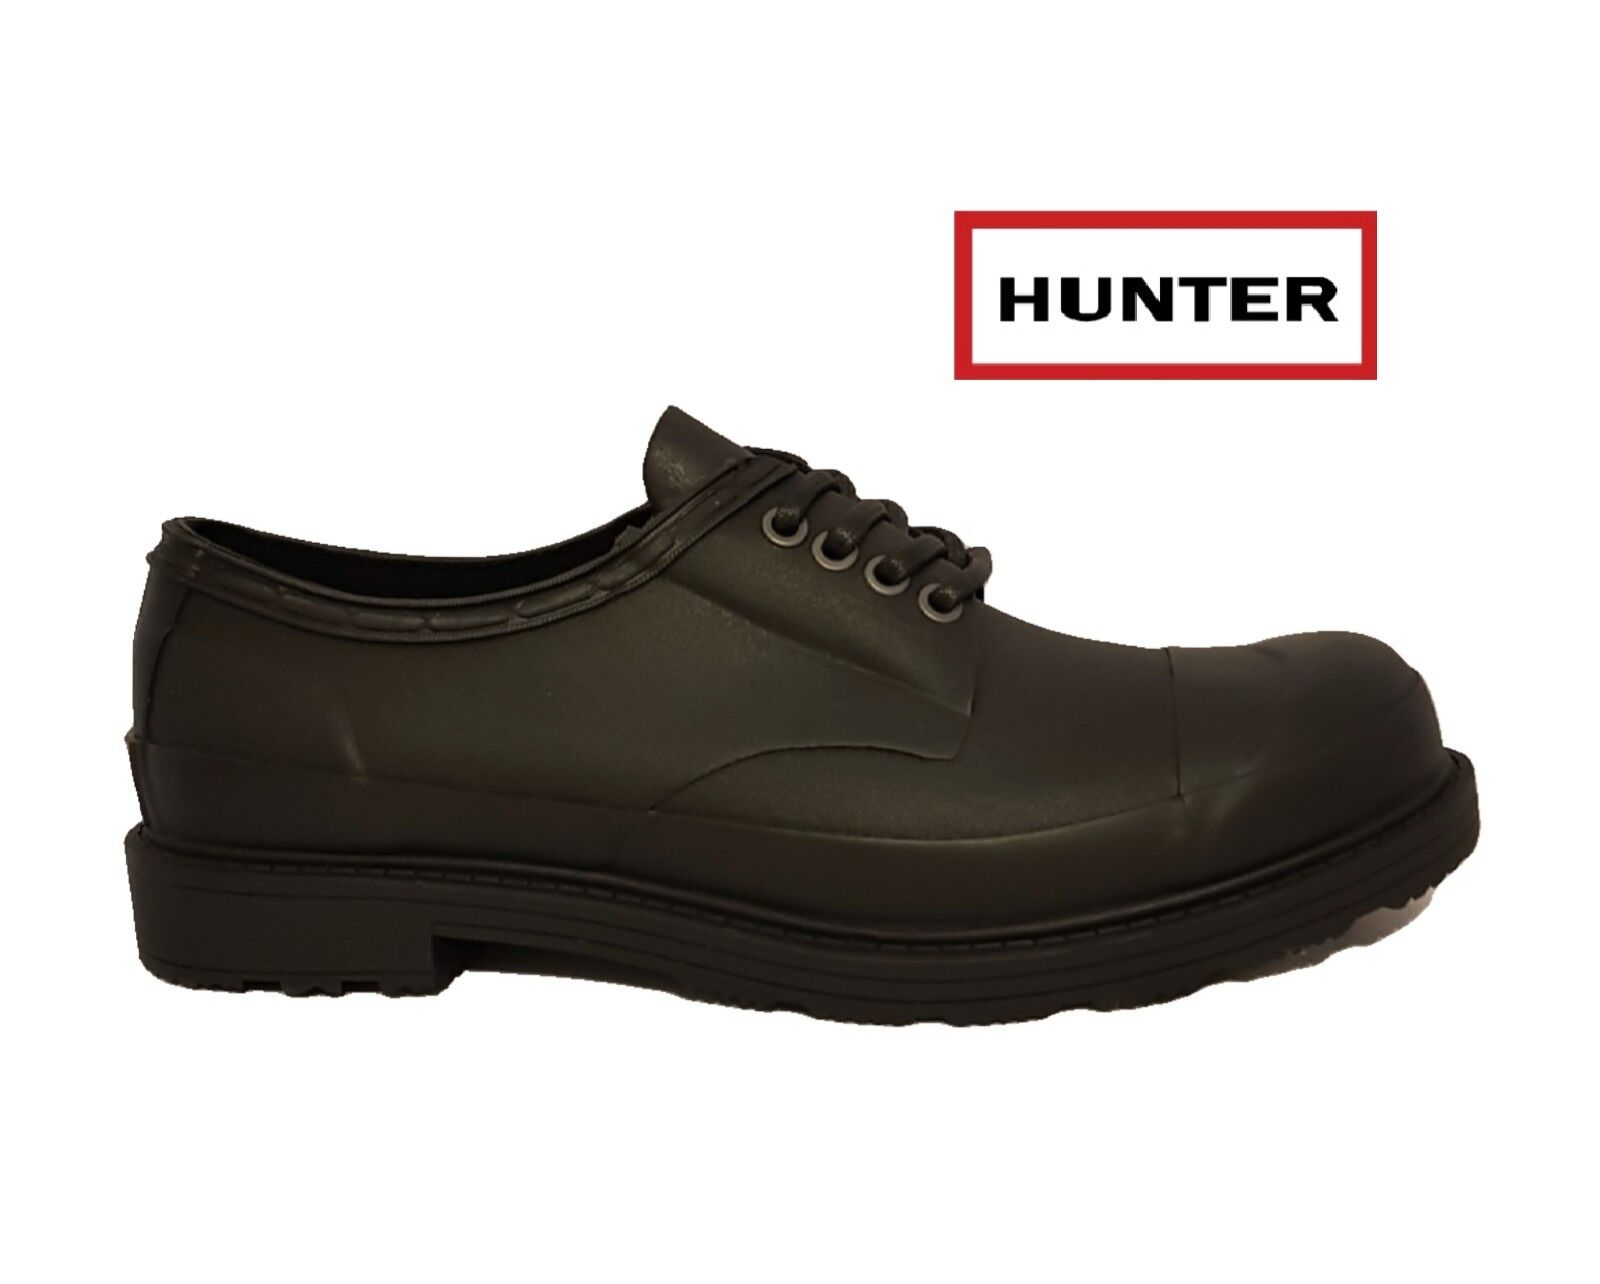 HUNTER NATURAL ORIGINAL DERBY Schuhe BLACK NATURAL HUNTER RUBBER WATERPROOF WELLIES LACE UPS MEN 954d13